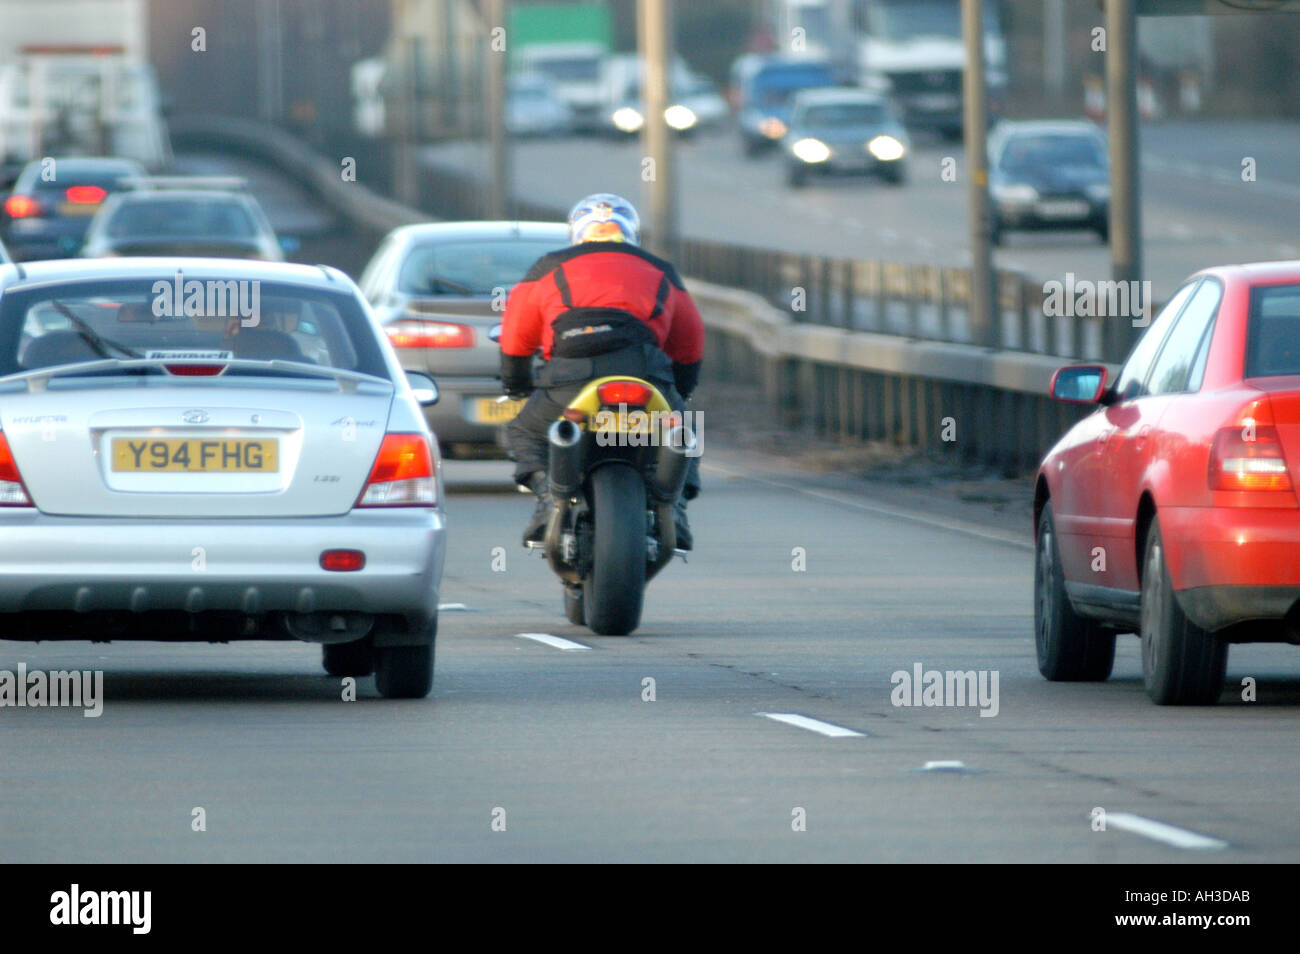 motorcycle cutting through traffic in london  uk - Stock Image